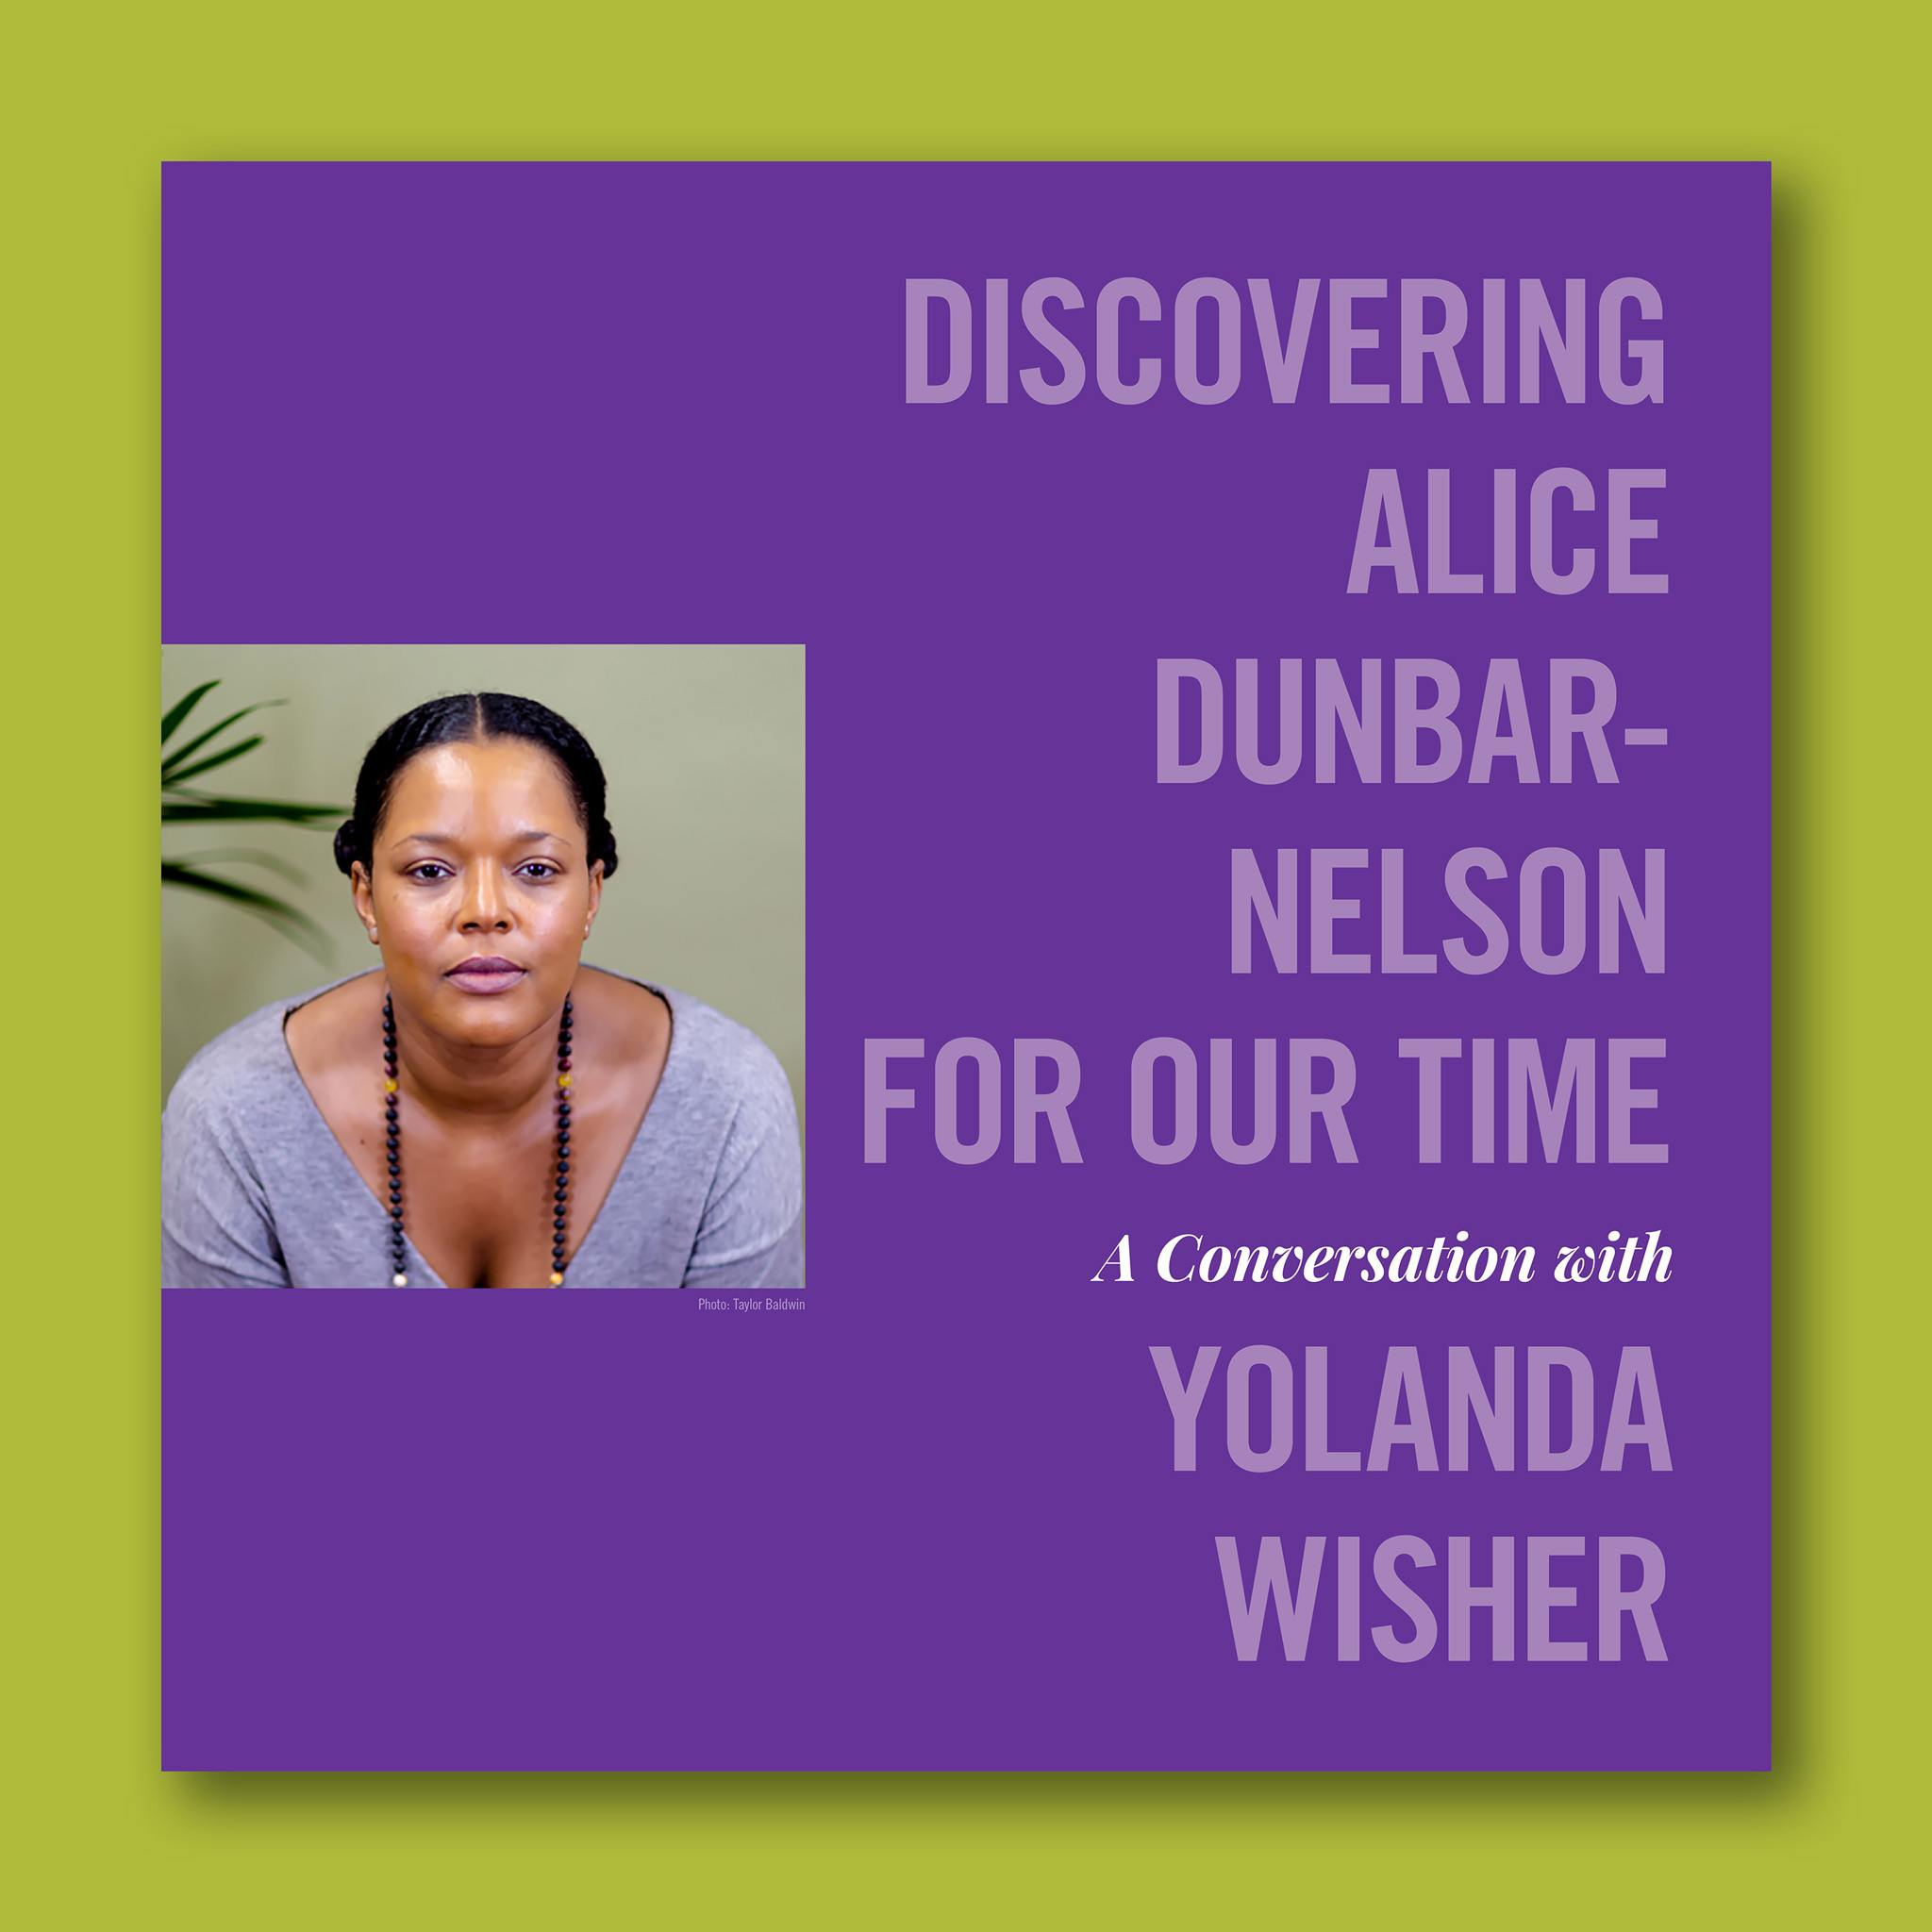 Episode 1: Discovering Alice Dunbar-Nelson for Our Time: A Conversation with Yolanda Wisher